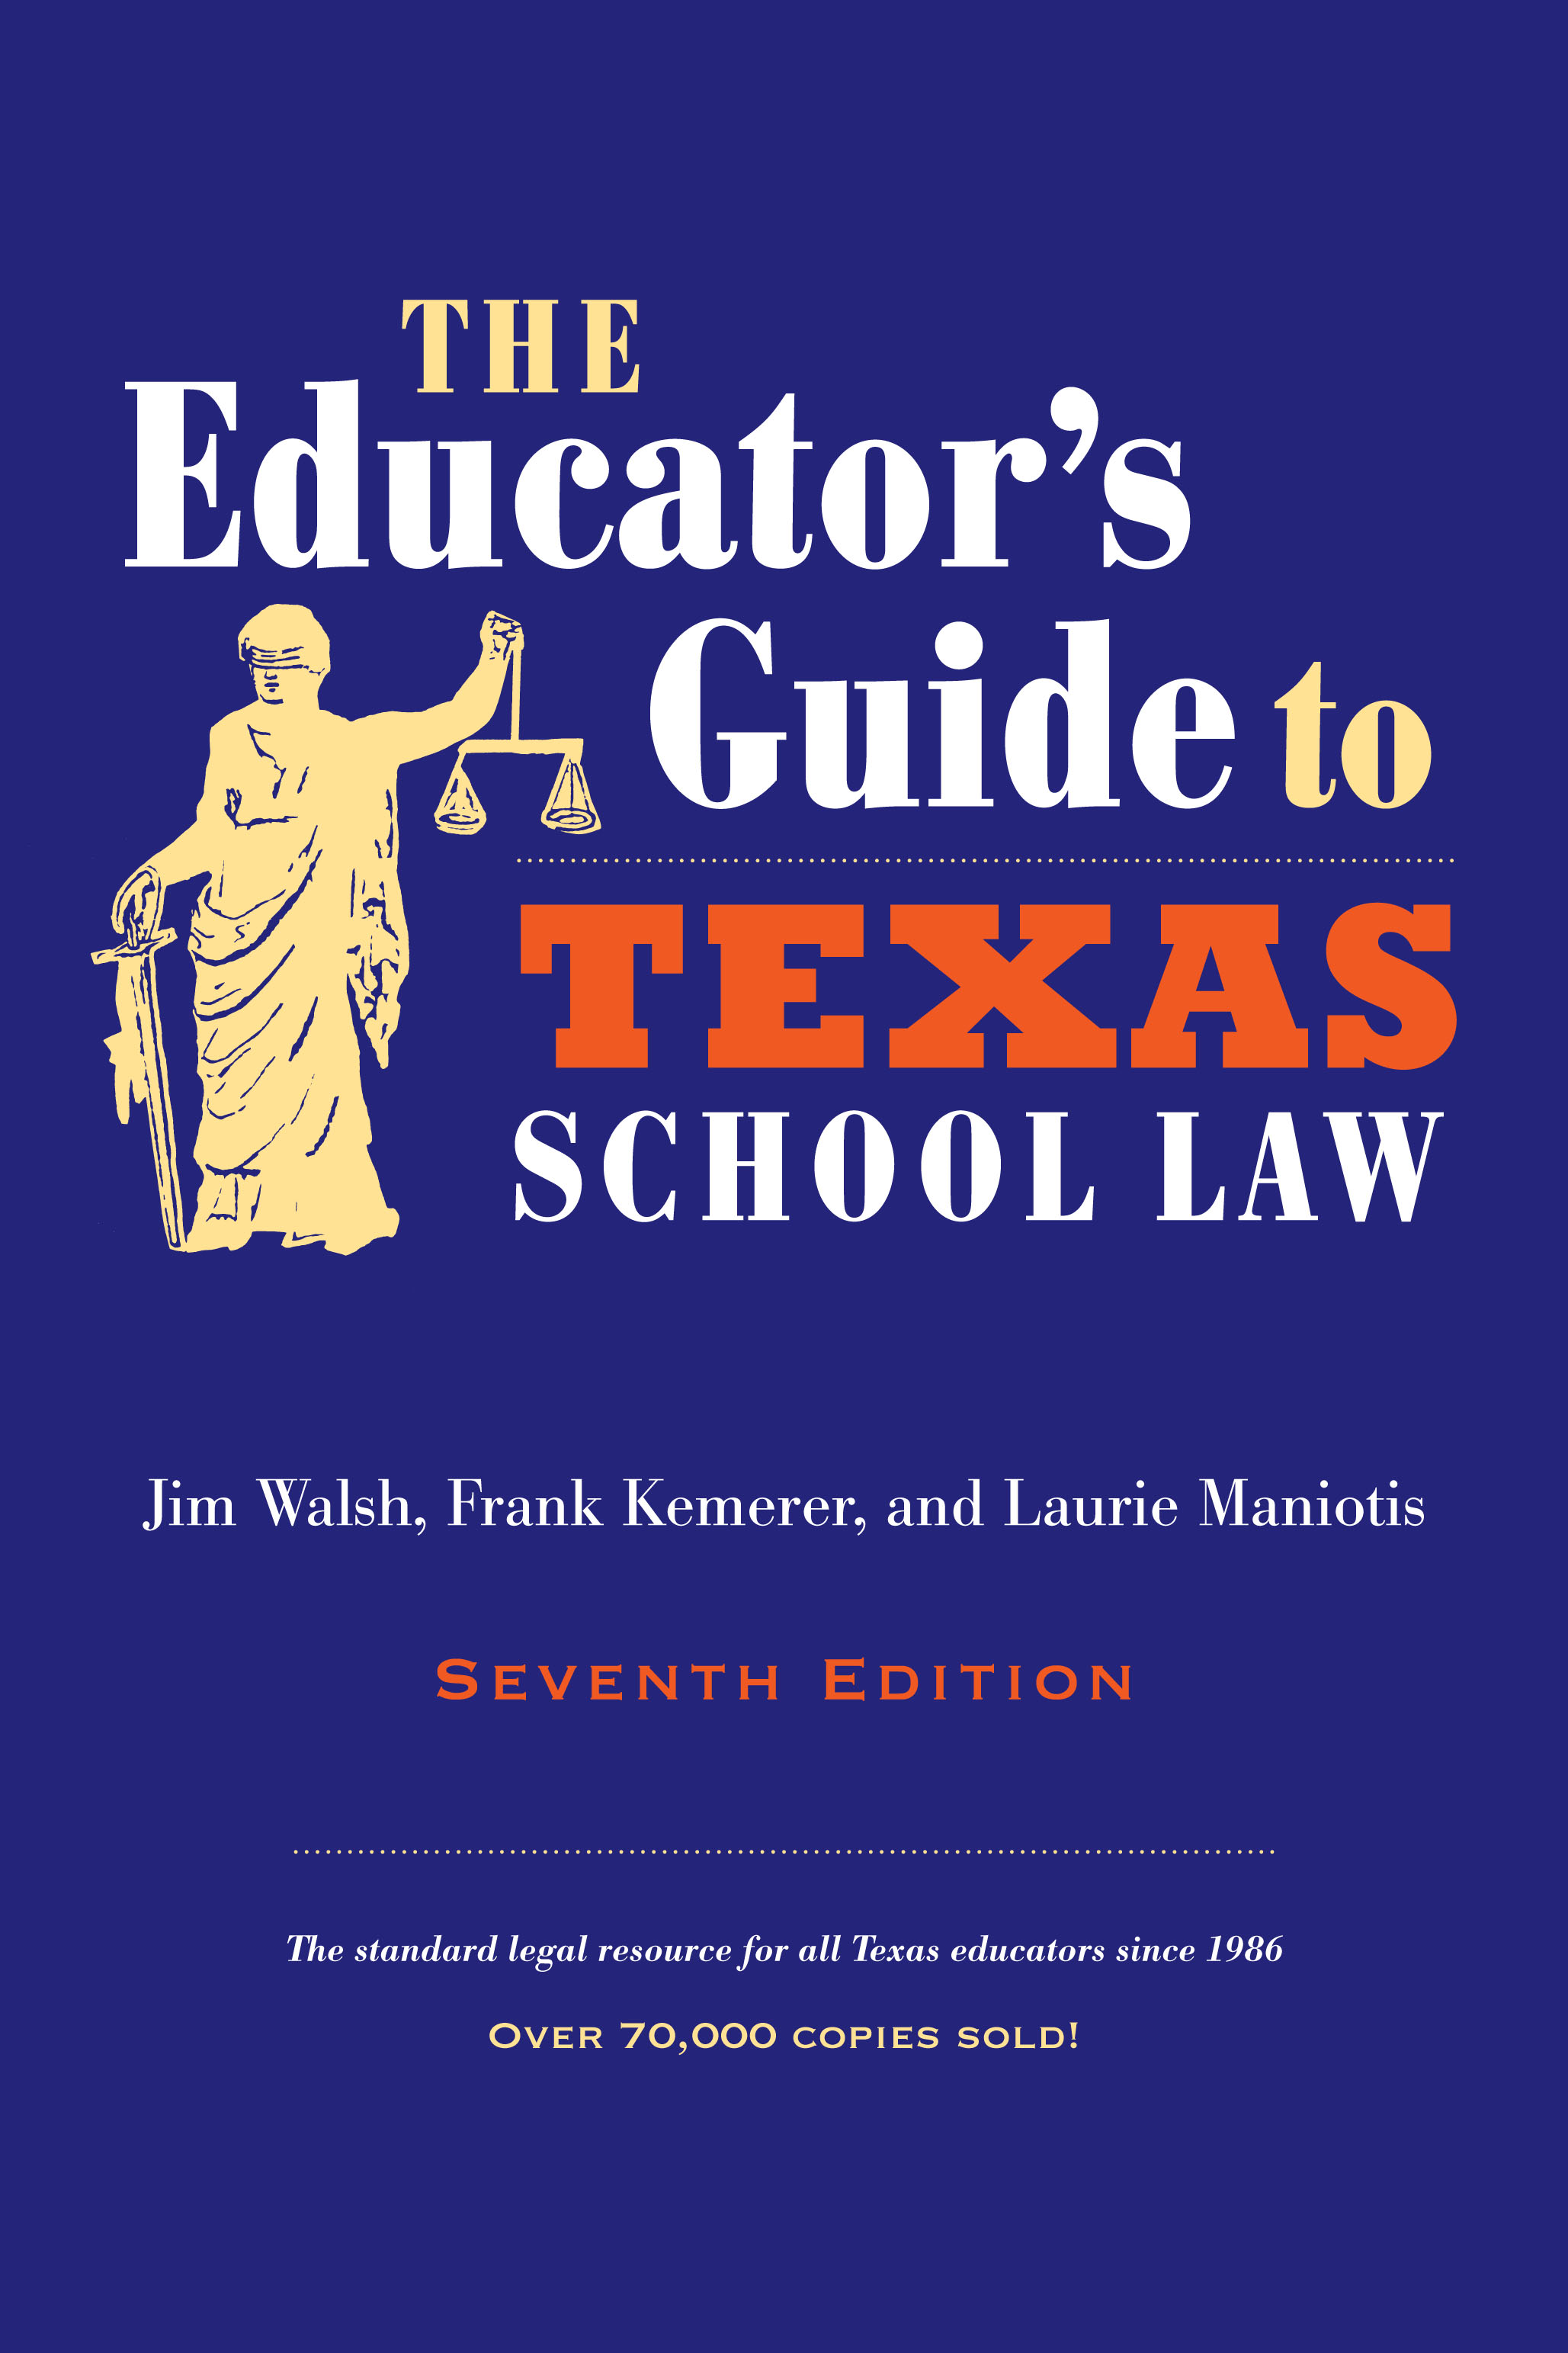 The Educator's Guide to Texas School Law Seventh Edition